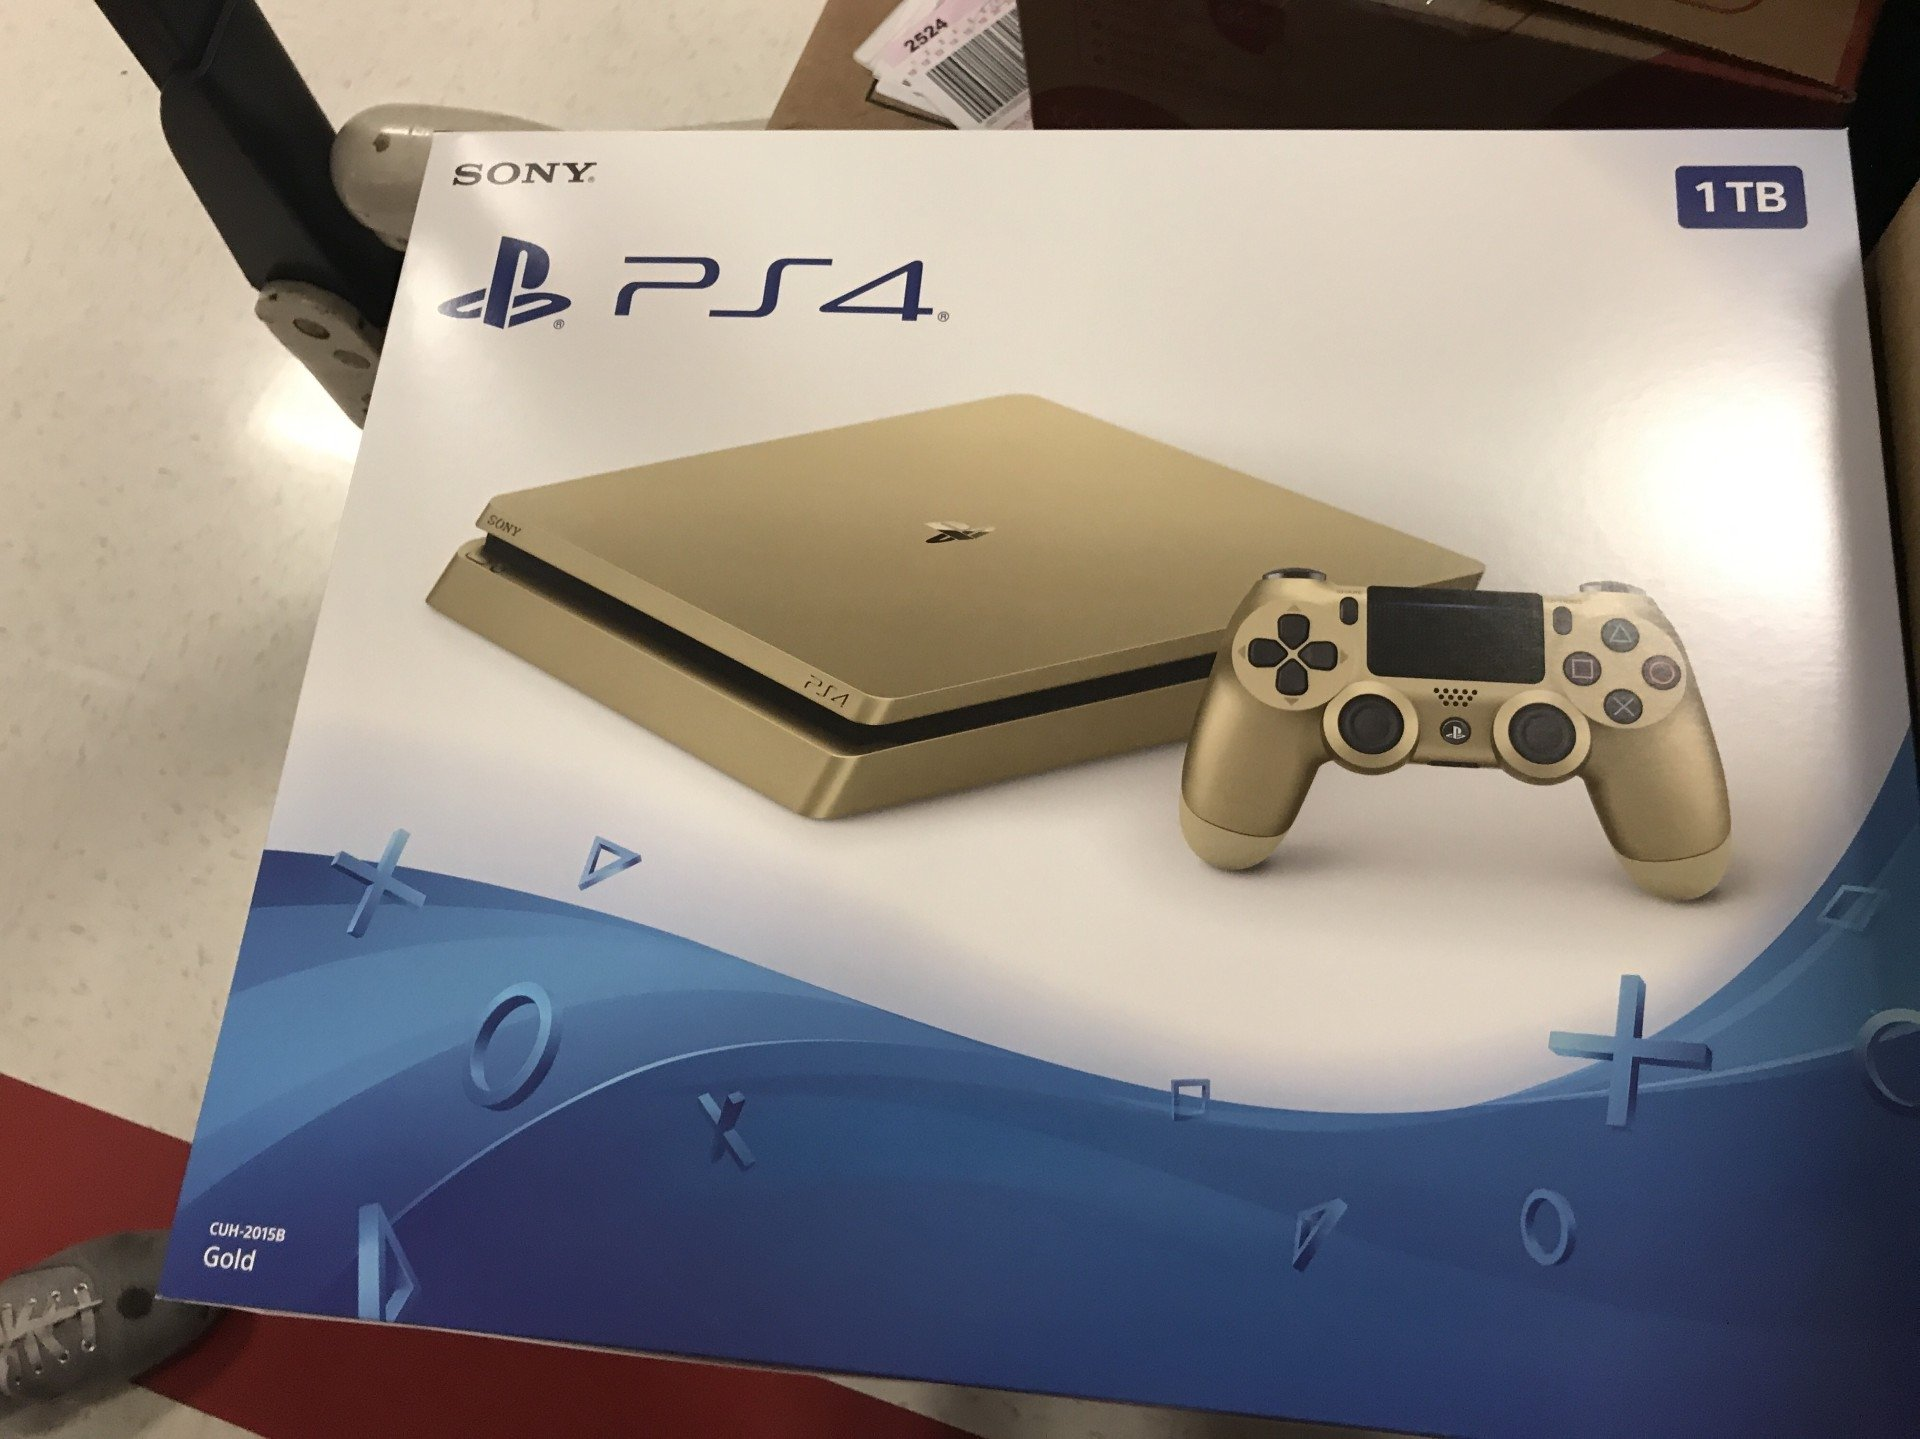 PlayStation 4 Slim Gold Edition